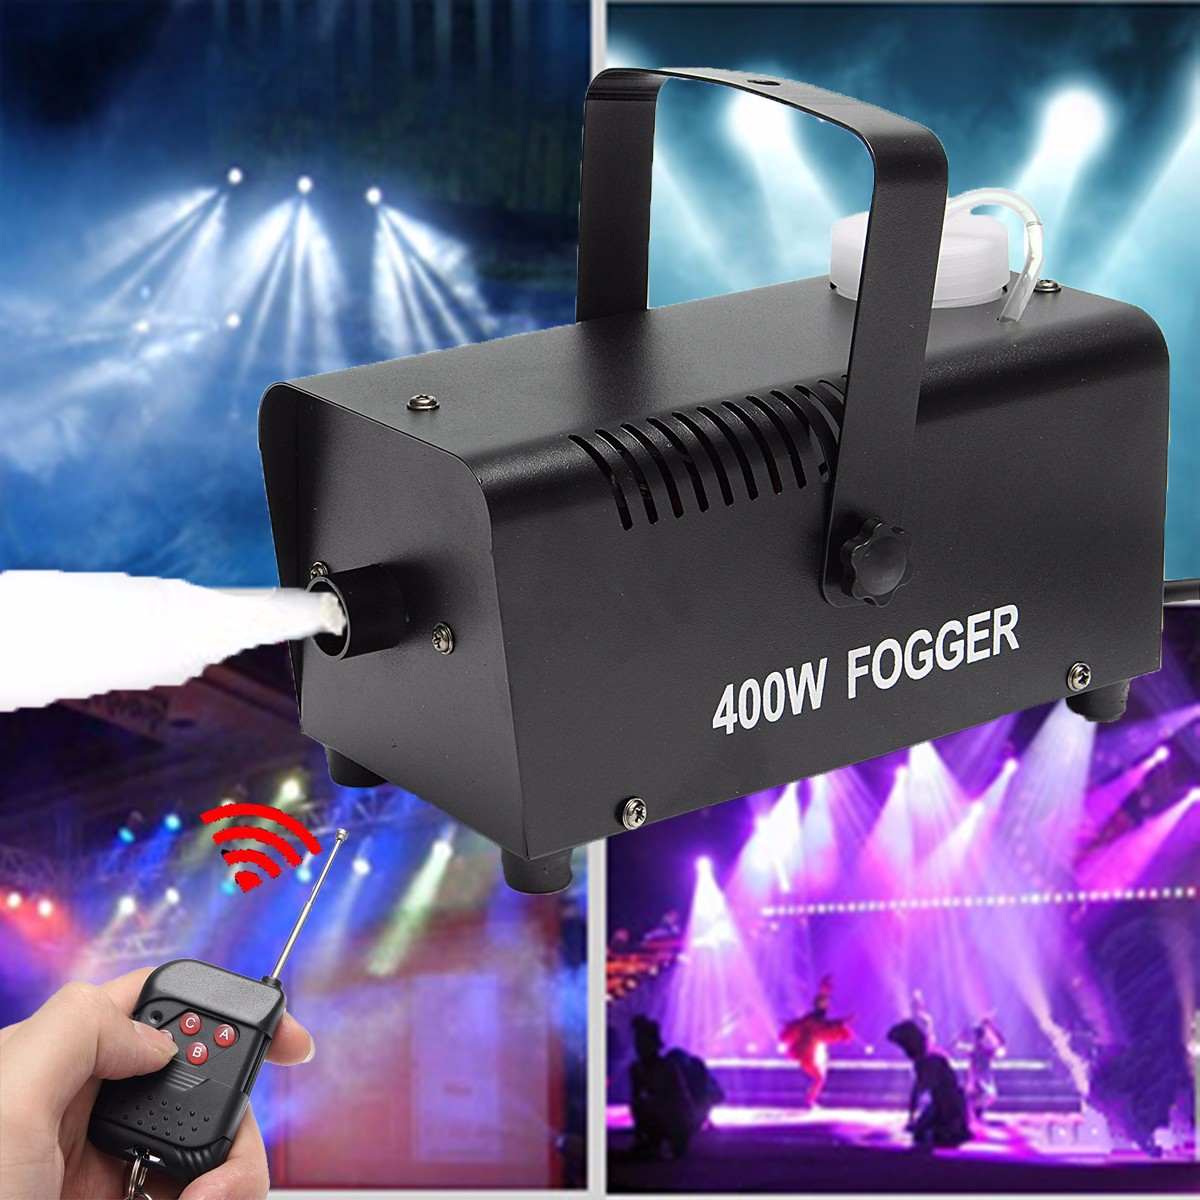 400W Fog Smoke Mist Machine Stage Effect Disco DJ Party Christmas with Remote Control niugul 1500w fog machine smoke machine stage mist effect 110v 240v remote wire control for disco dj party spray up fogger maker